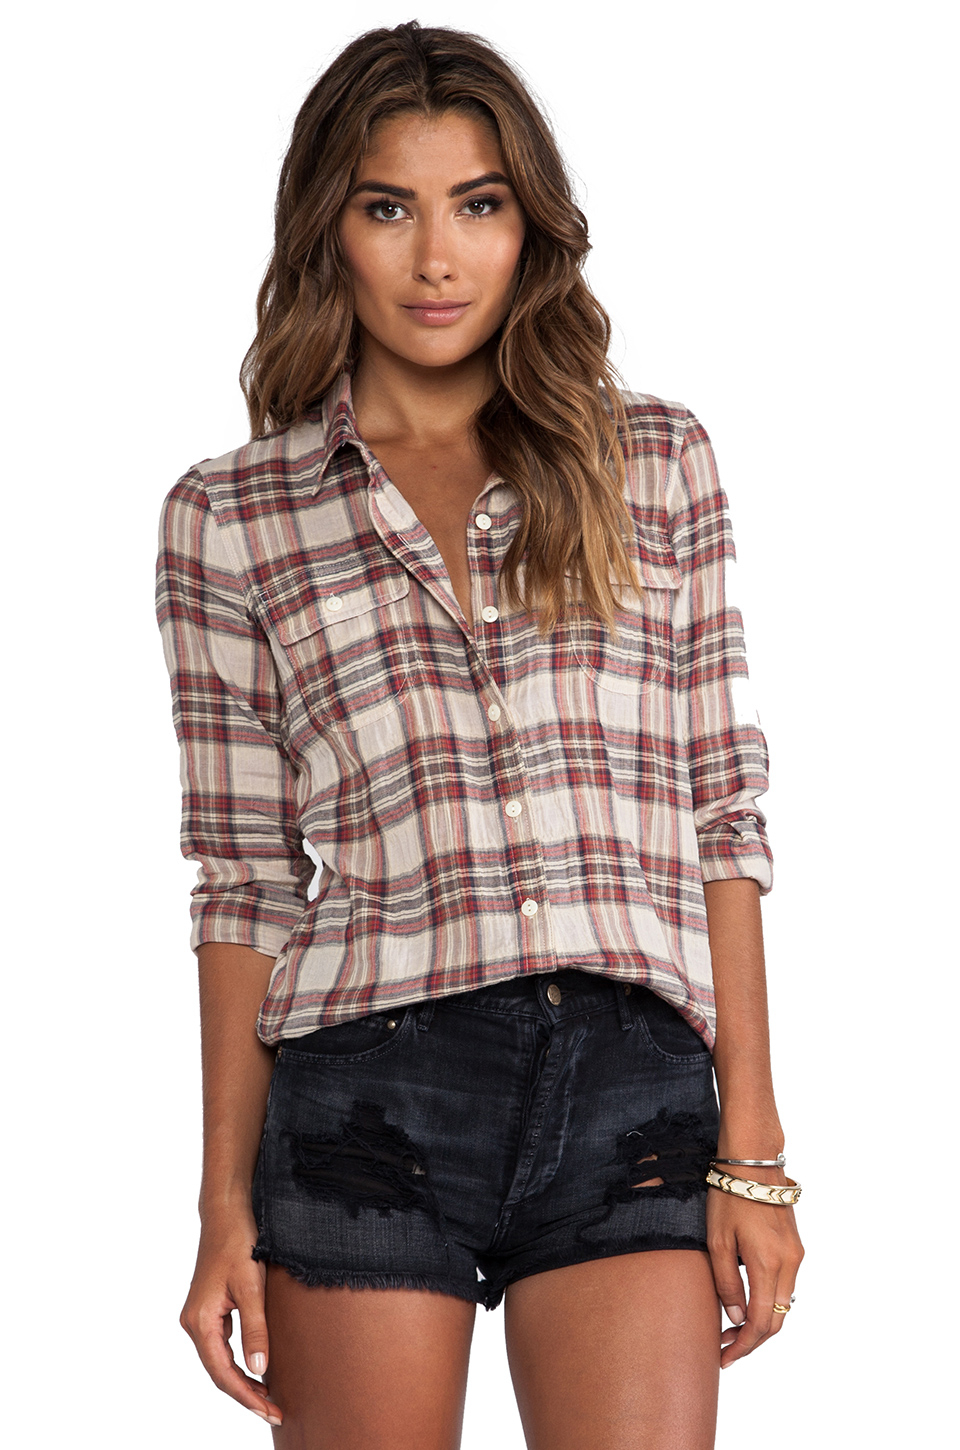 Lyst capulet plaid shirt in red Womens red tartan plaid shirt